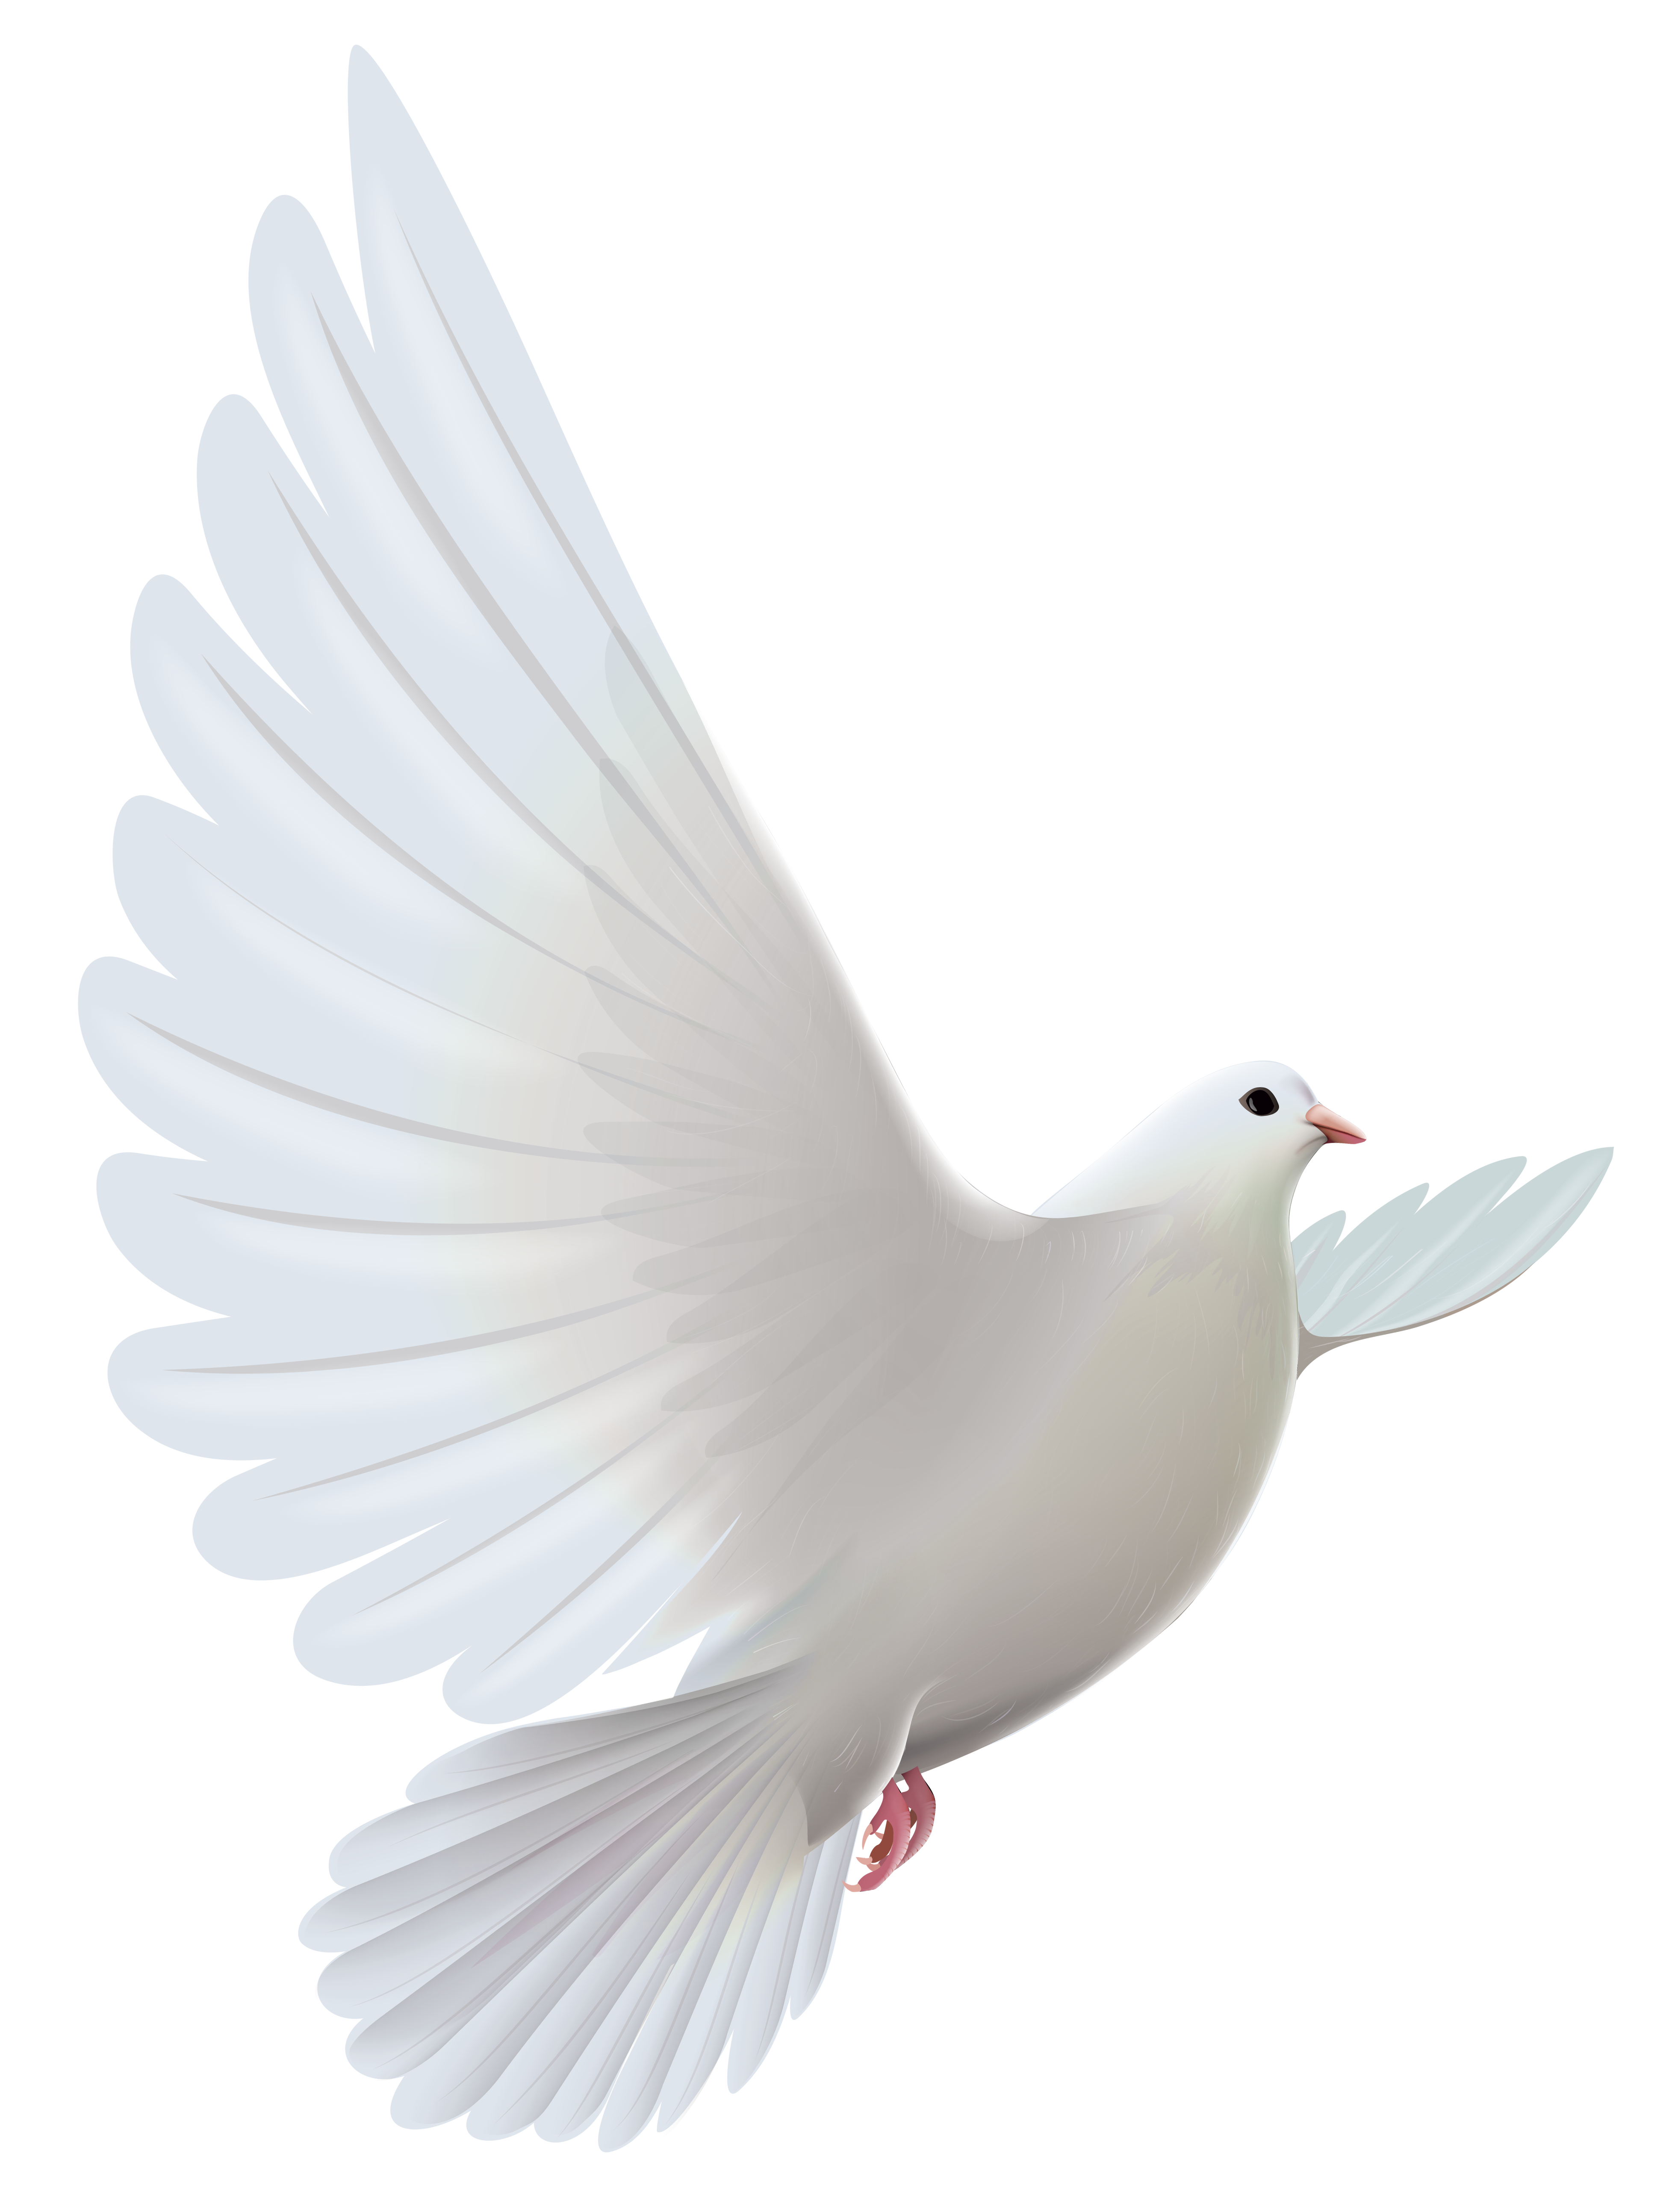 White Dove clipart #3, Download drawings